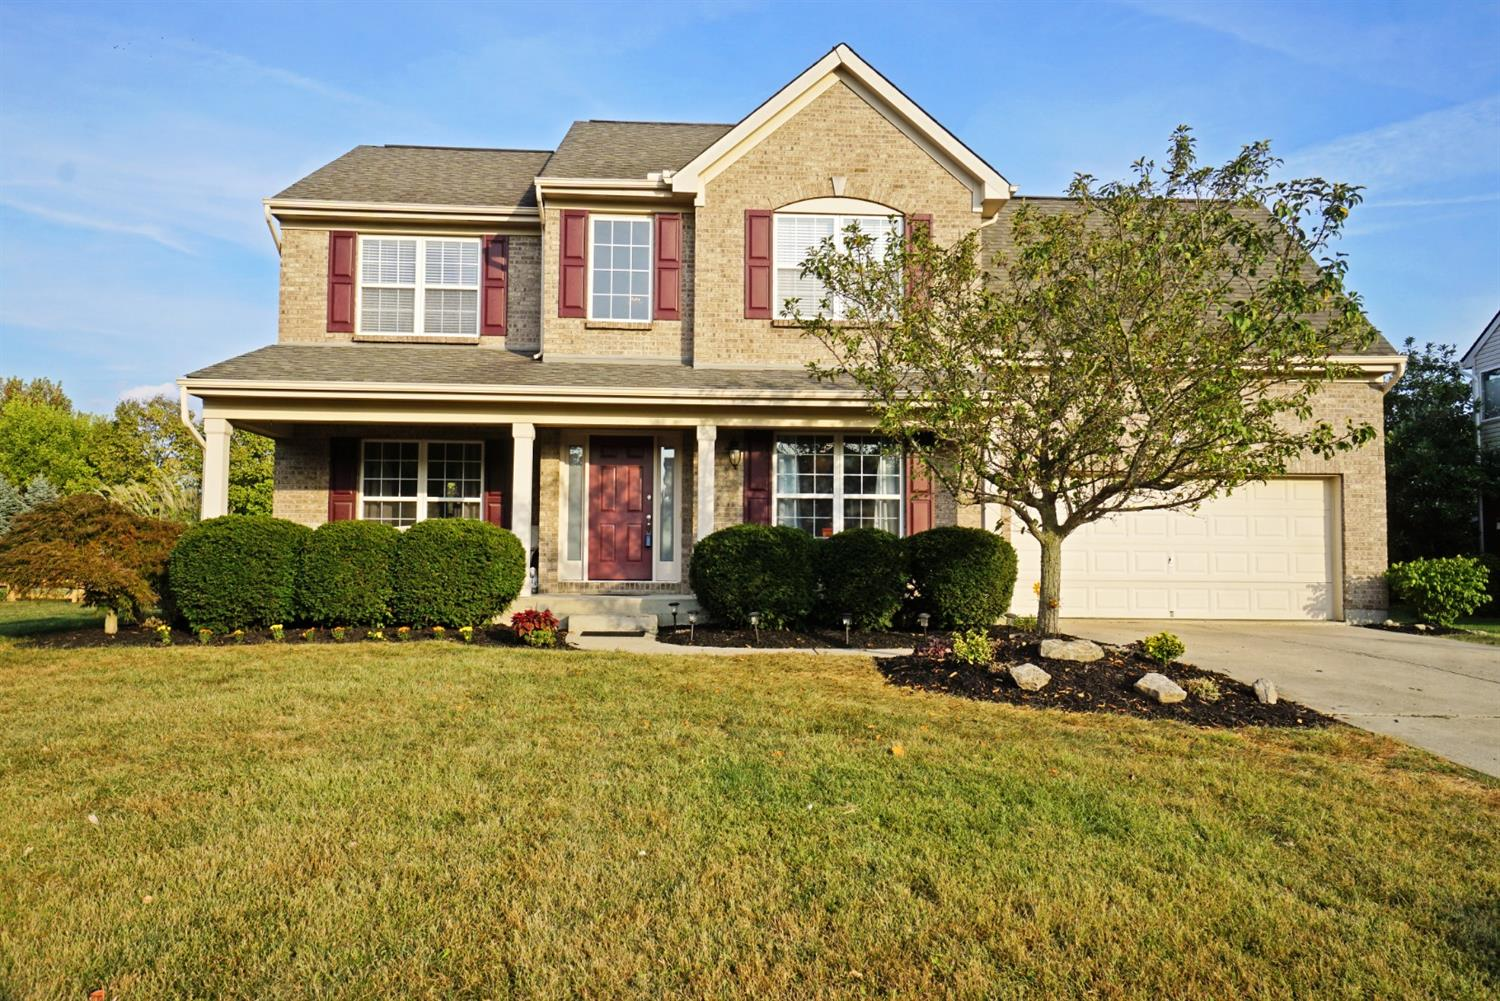 Photo of 4164 Meadowbrook Lane, Mason, OH 45040